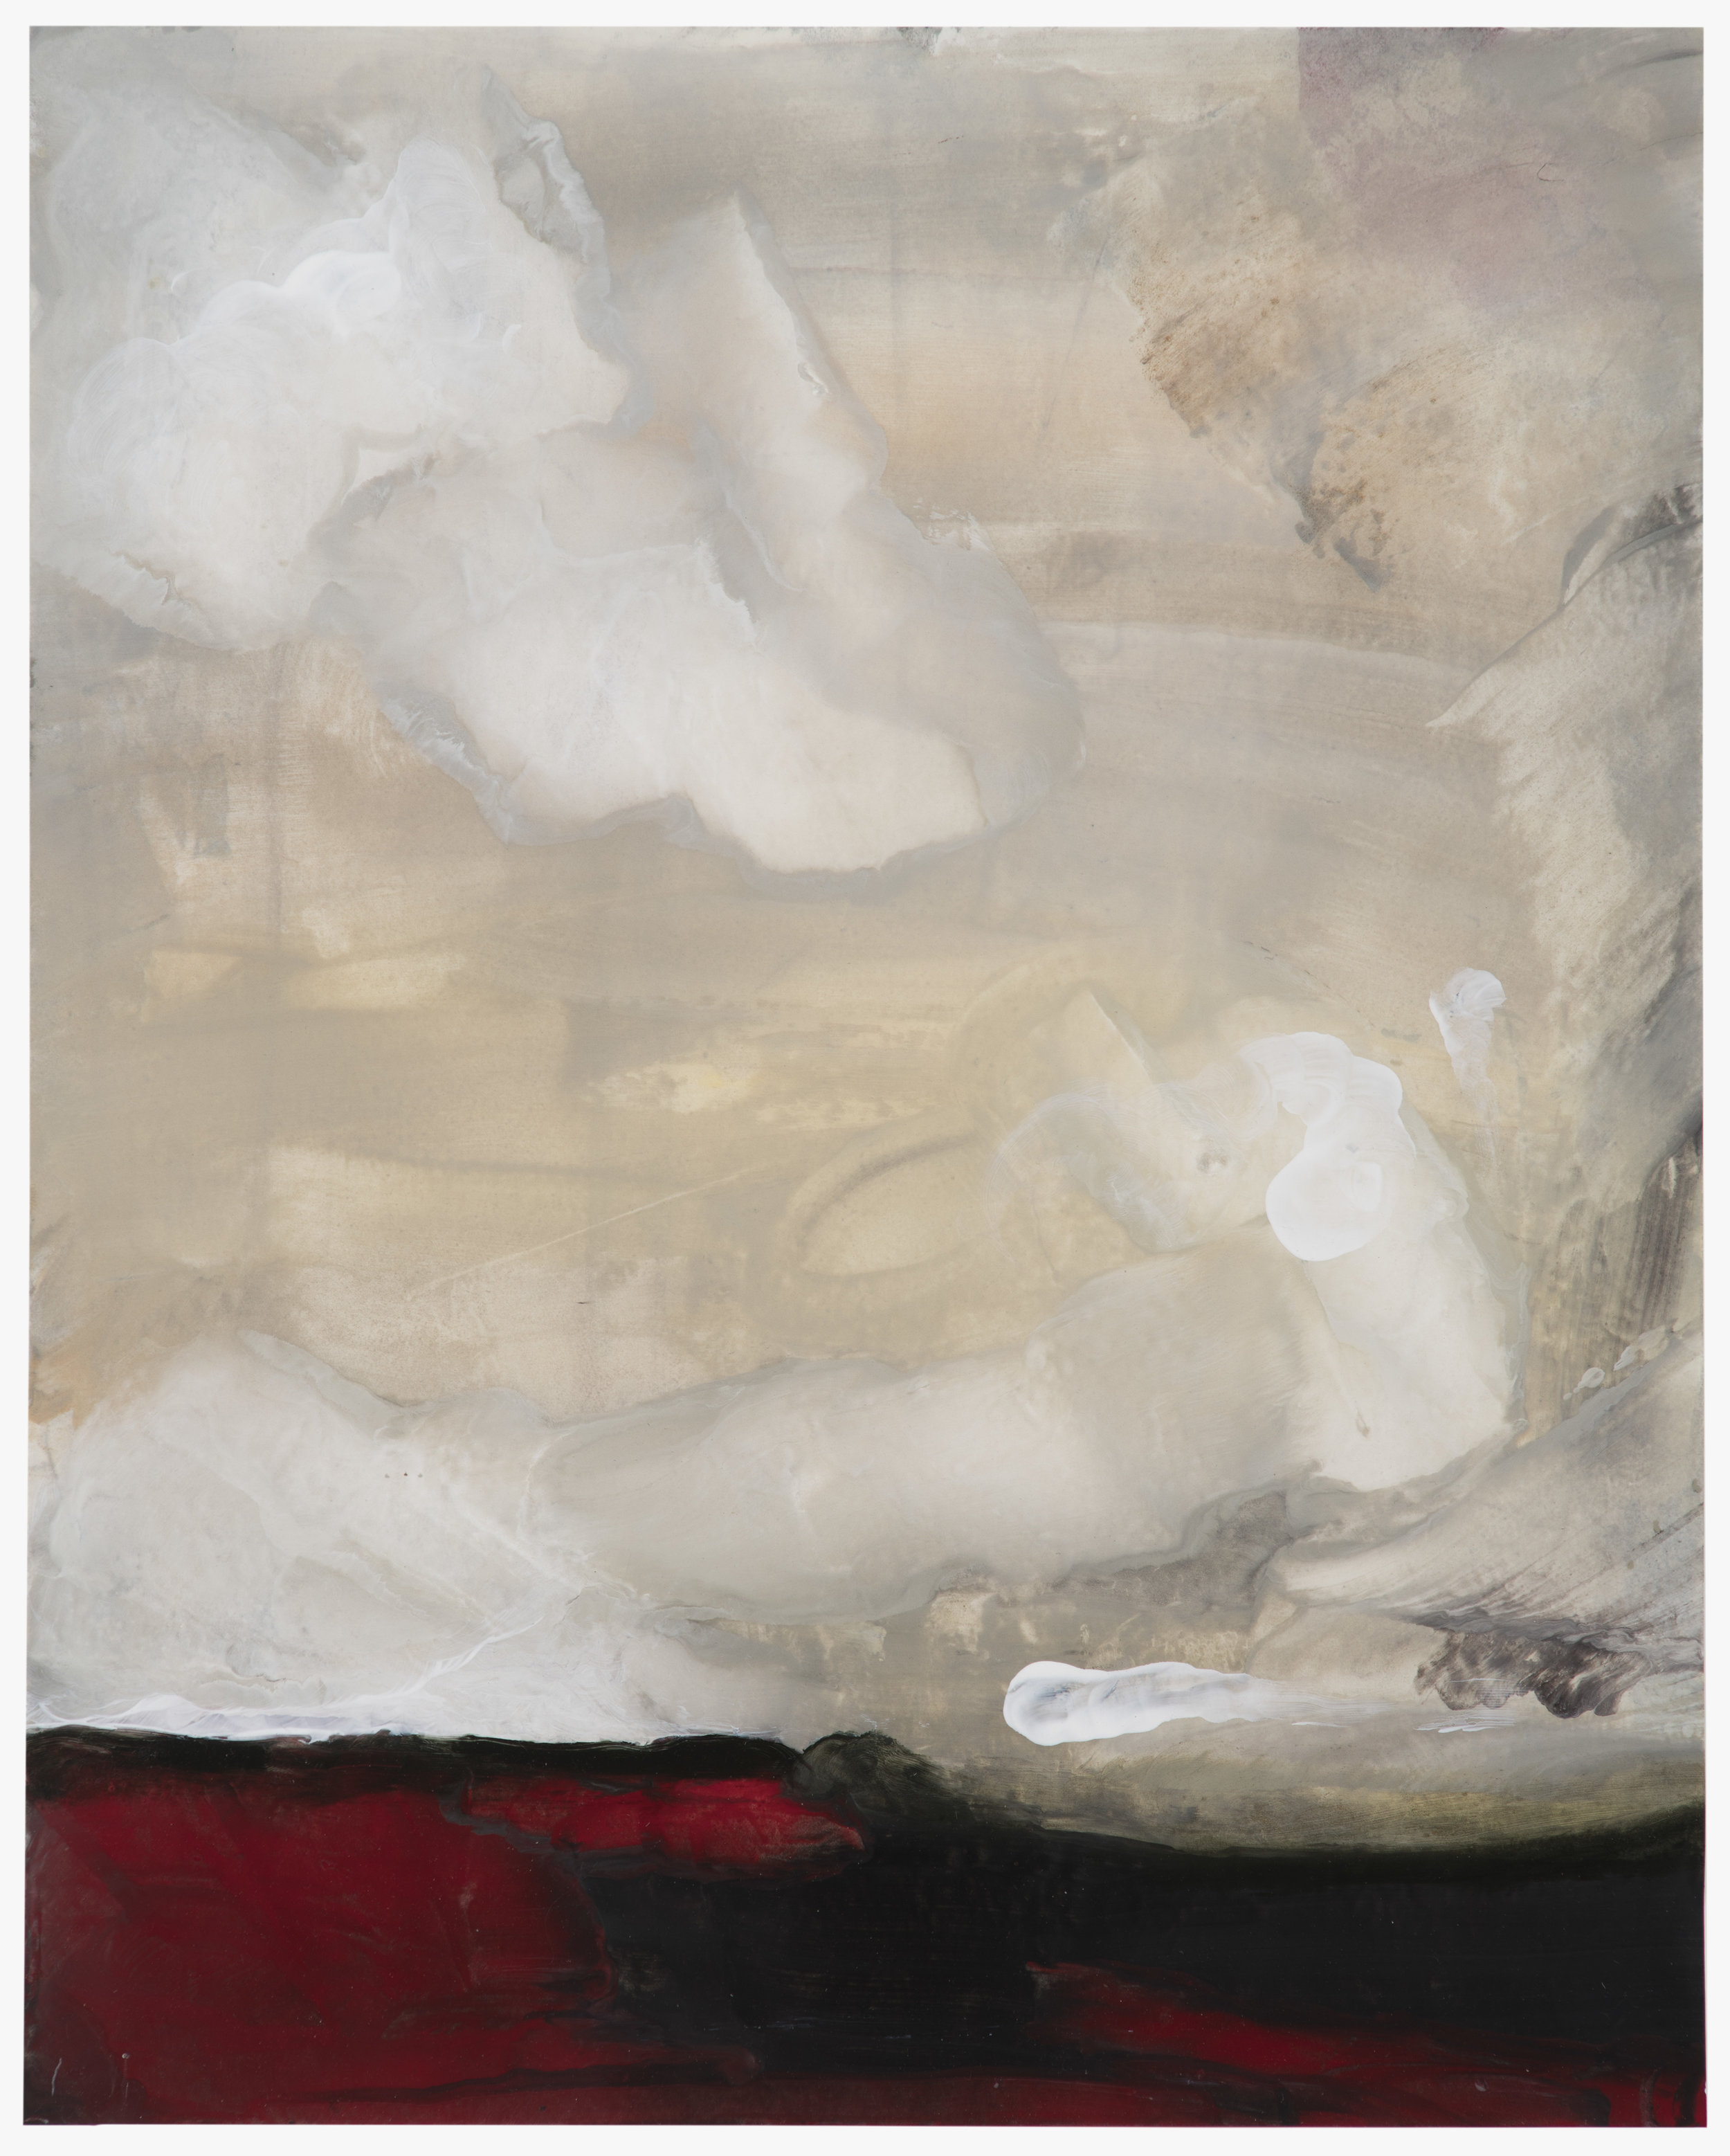 Ditch Plains, encaustic on rice paper, 21 x 25 in, $2800